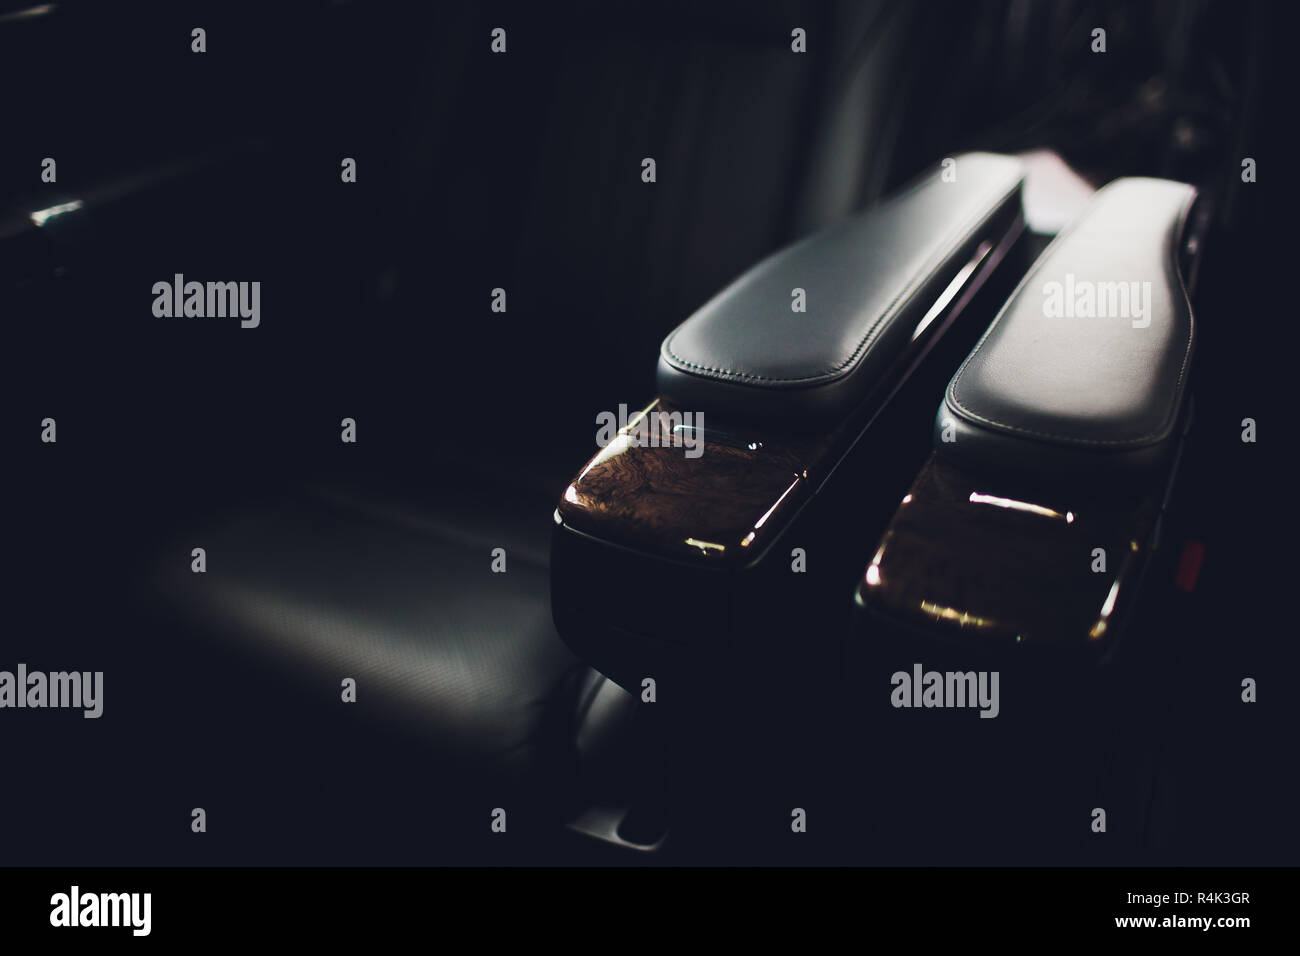 Luxury car inside. Interior of prestige modern car. Comfortable leather seats. Black perforated leather cockpit with isolated black background. Stock Photo